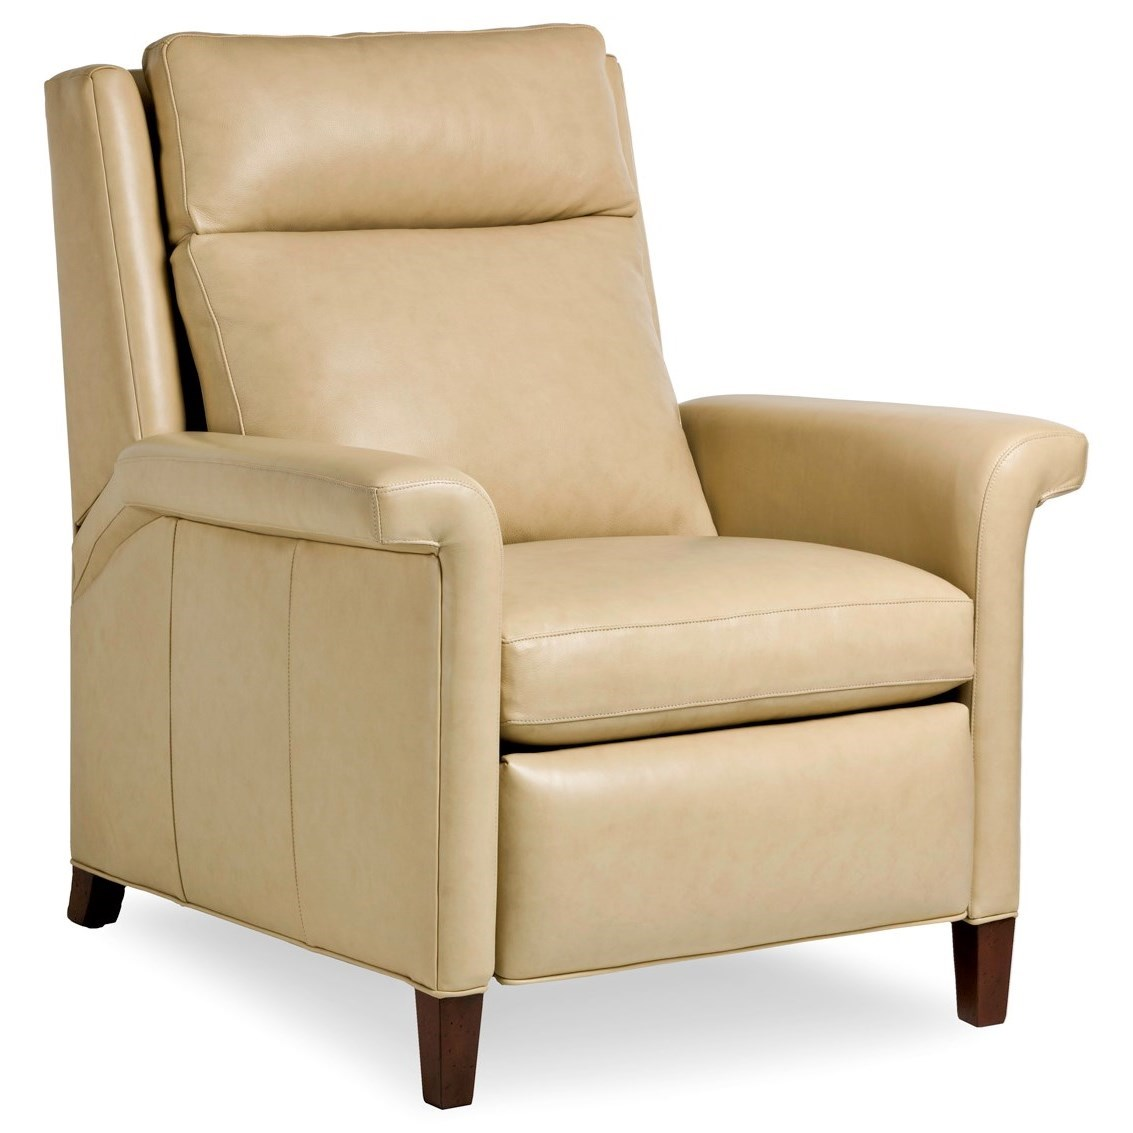 Motion Seating Push Back Recliner by Hancock & Moore at Jacksonville Furniture Mart